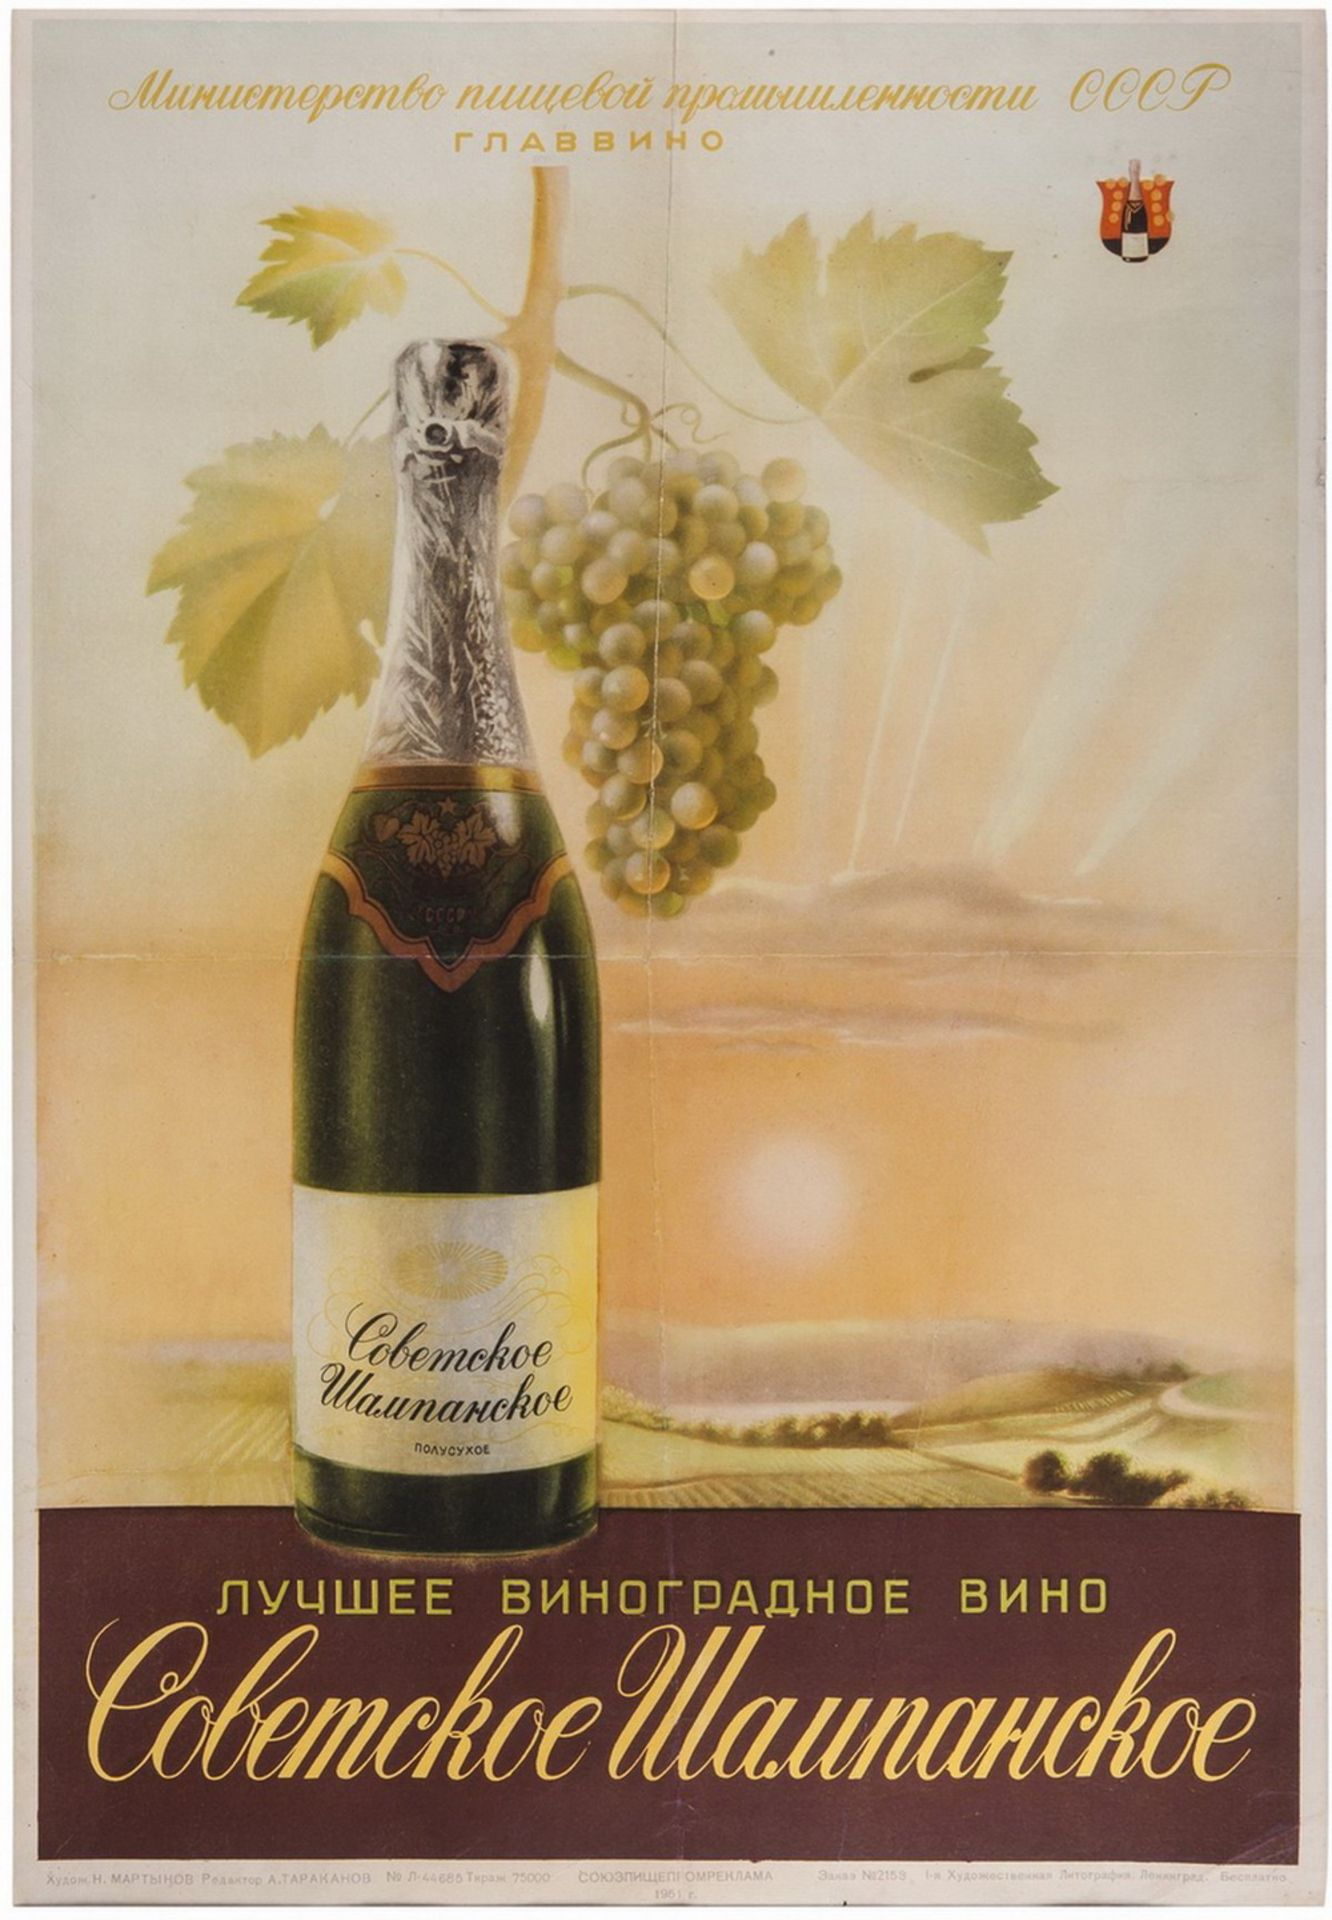 """[Soviet art]. Martynov, N.I. Poster """"Soviet champagne wine is the best grape wine"""". Moscow, 1951. 58"""